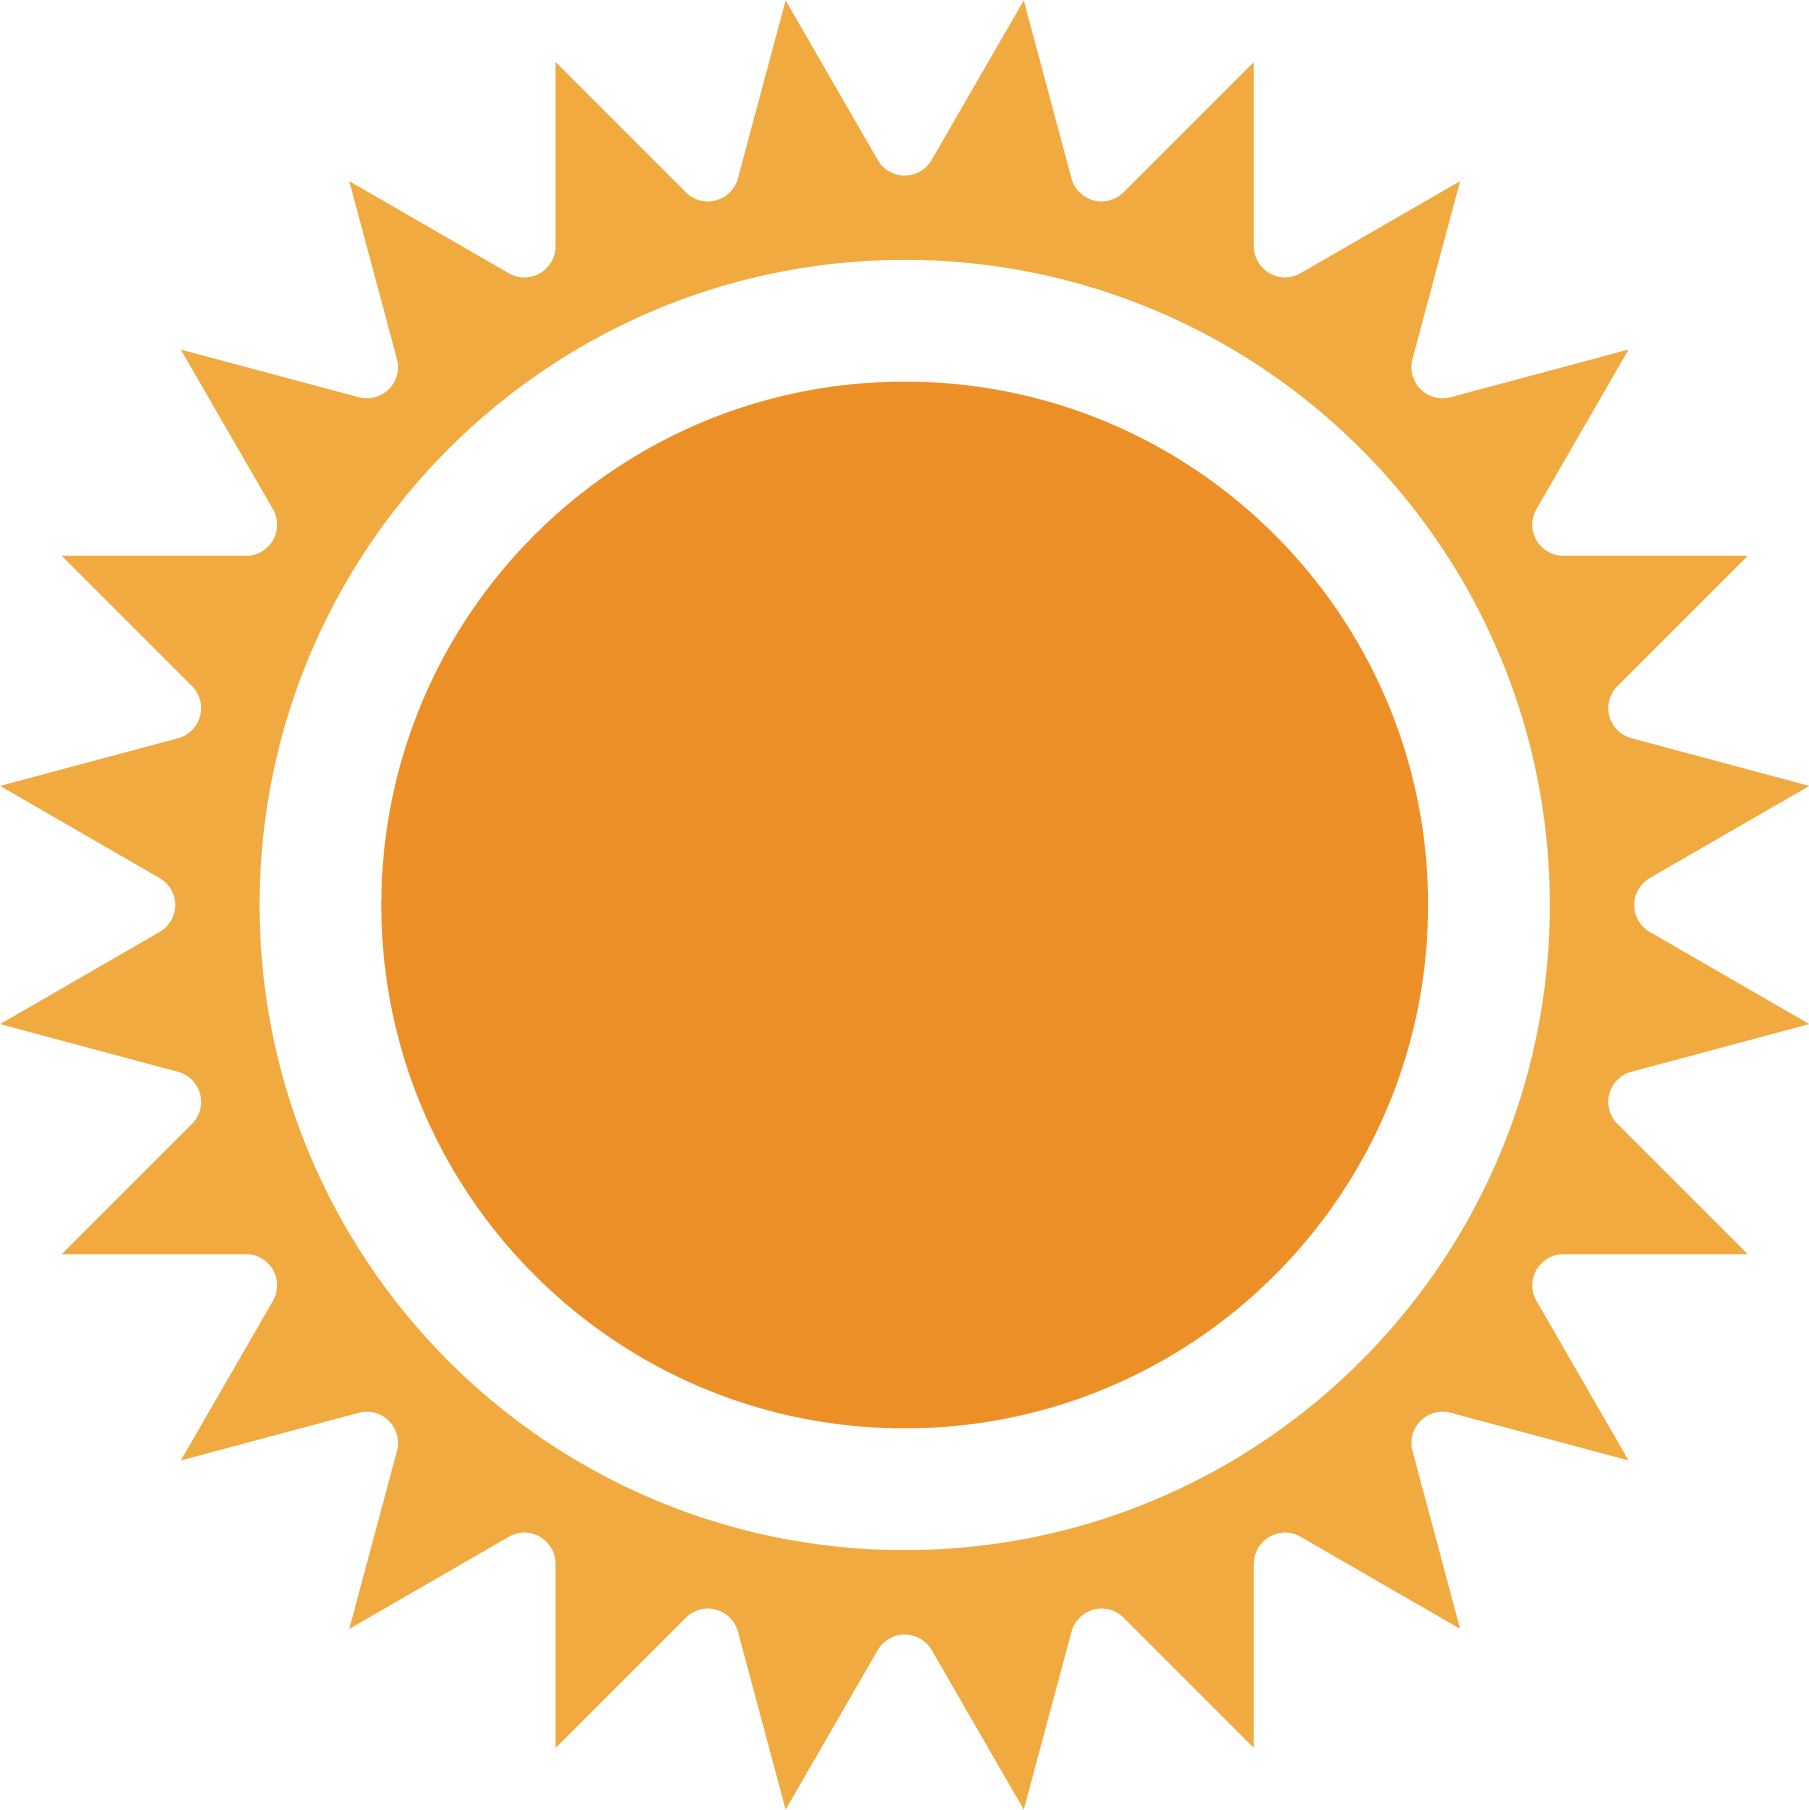 Clipart Sunshine Preschool Clipart Sunshine Preschool